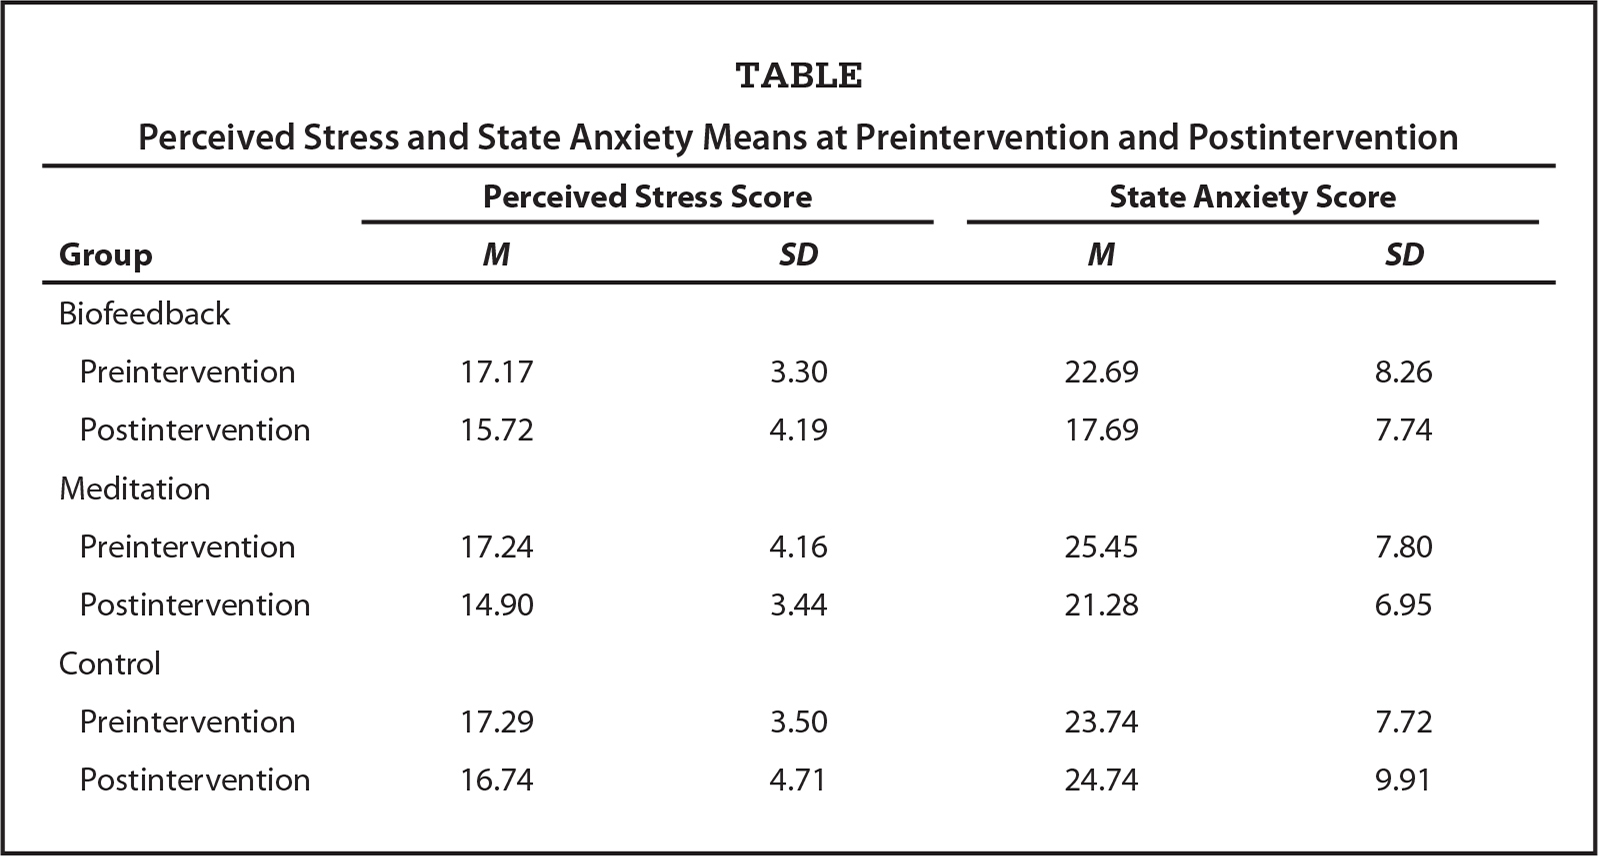 Perceived Stress and State Anxiety Means at Preintervention and Postintervention